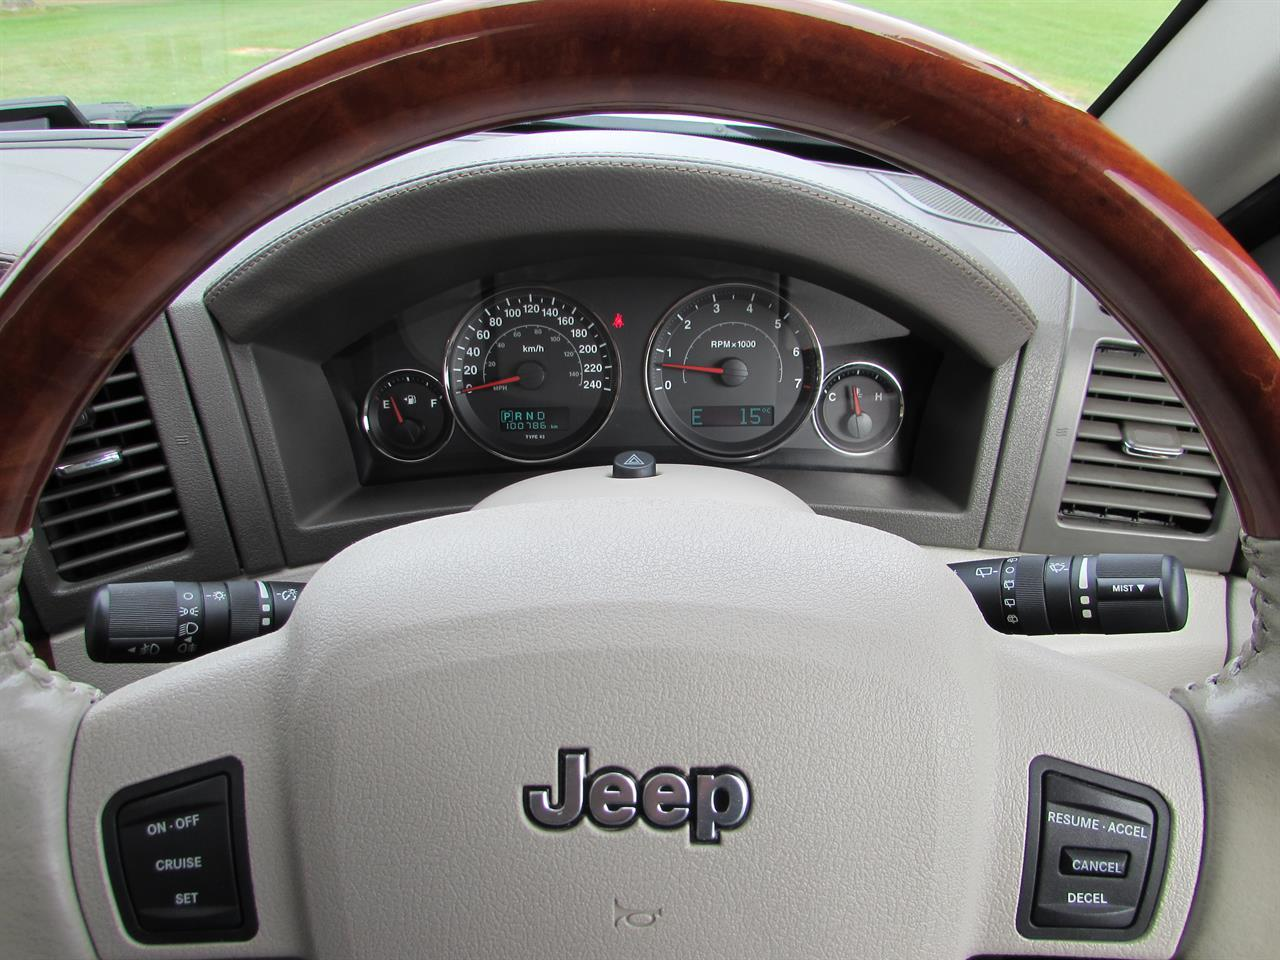 image-10, 2007 Jeep Grand Cherokee Limited 5.7L Hemi V8 at Christchurch